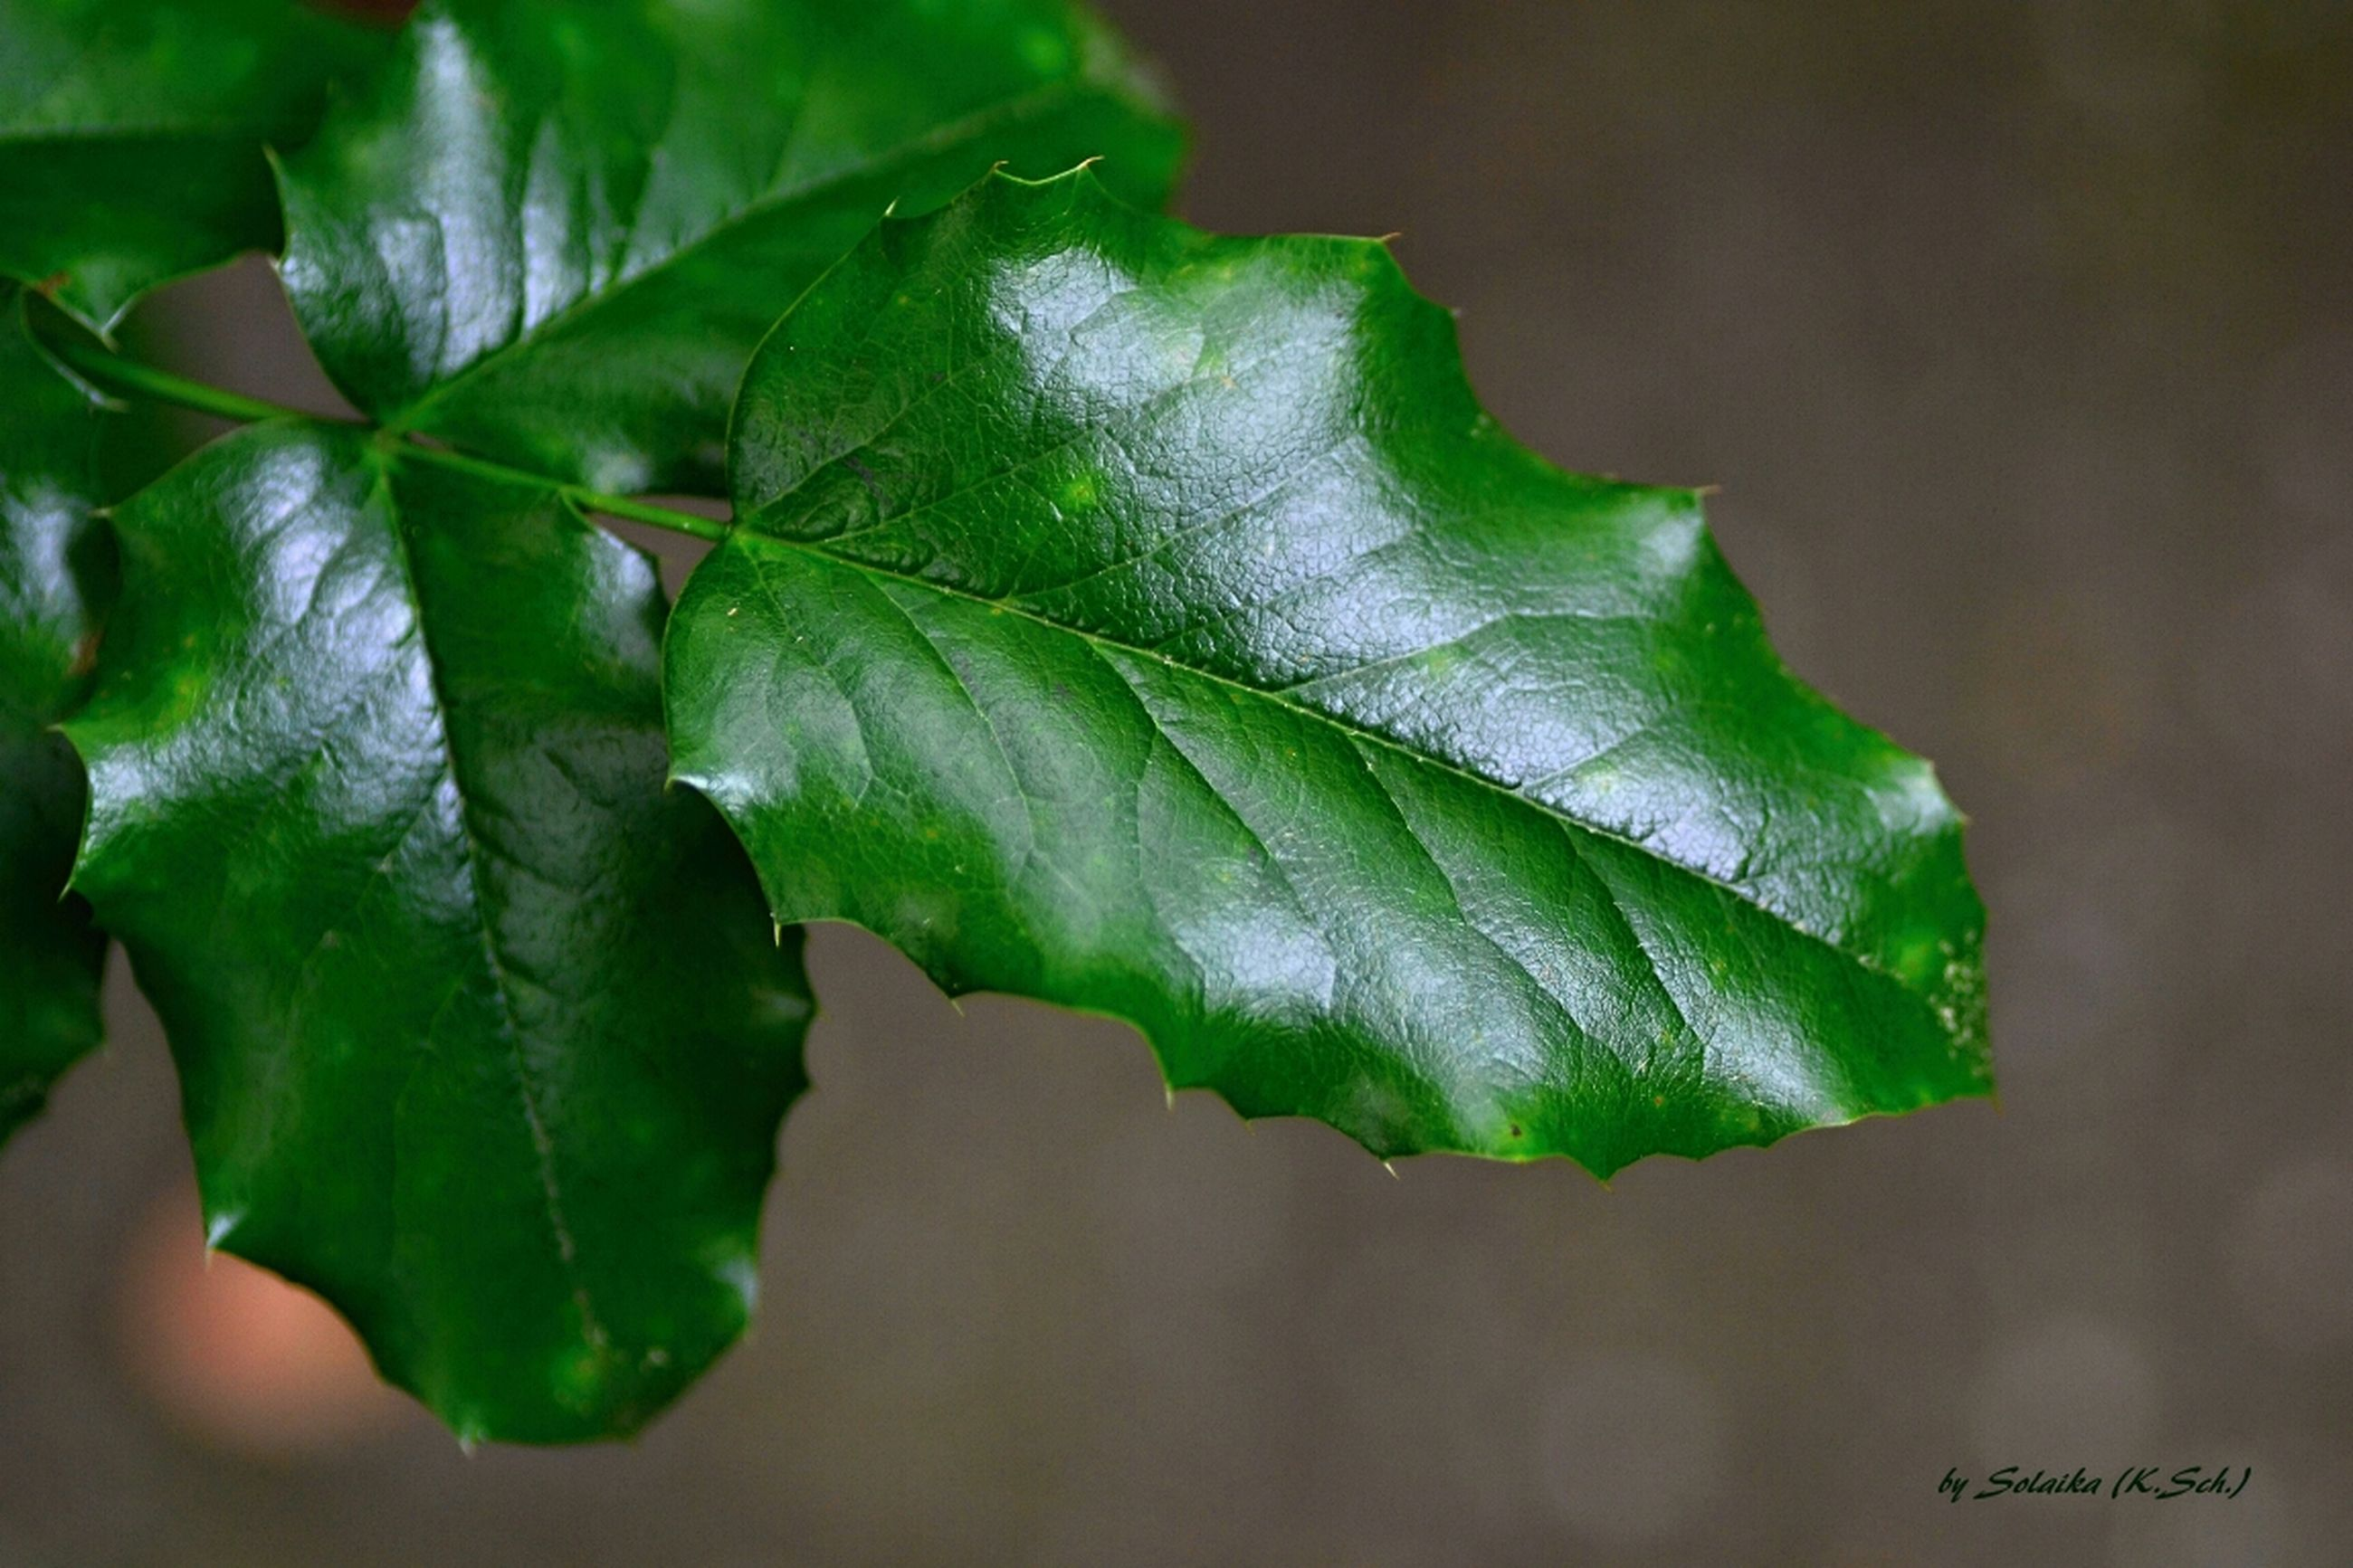 leaf, close-up, green color, growth, leaf vein, focus on foreground, plant, nature, beauty in nature, freshness, fragility, selective focus, leaves, drop, natural pattern, green, outdoors, no people, day, wet